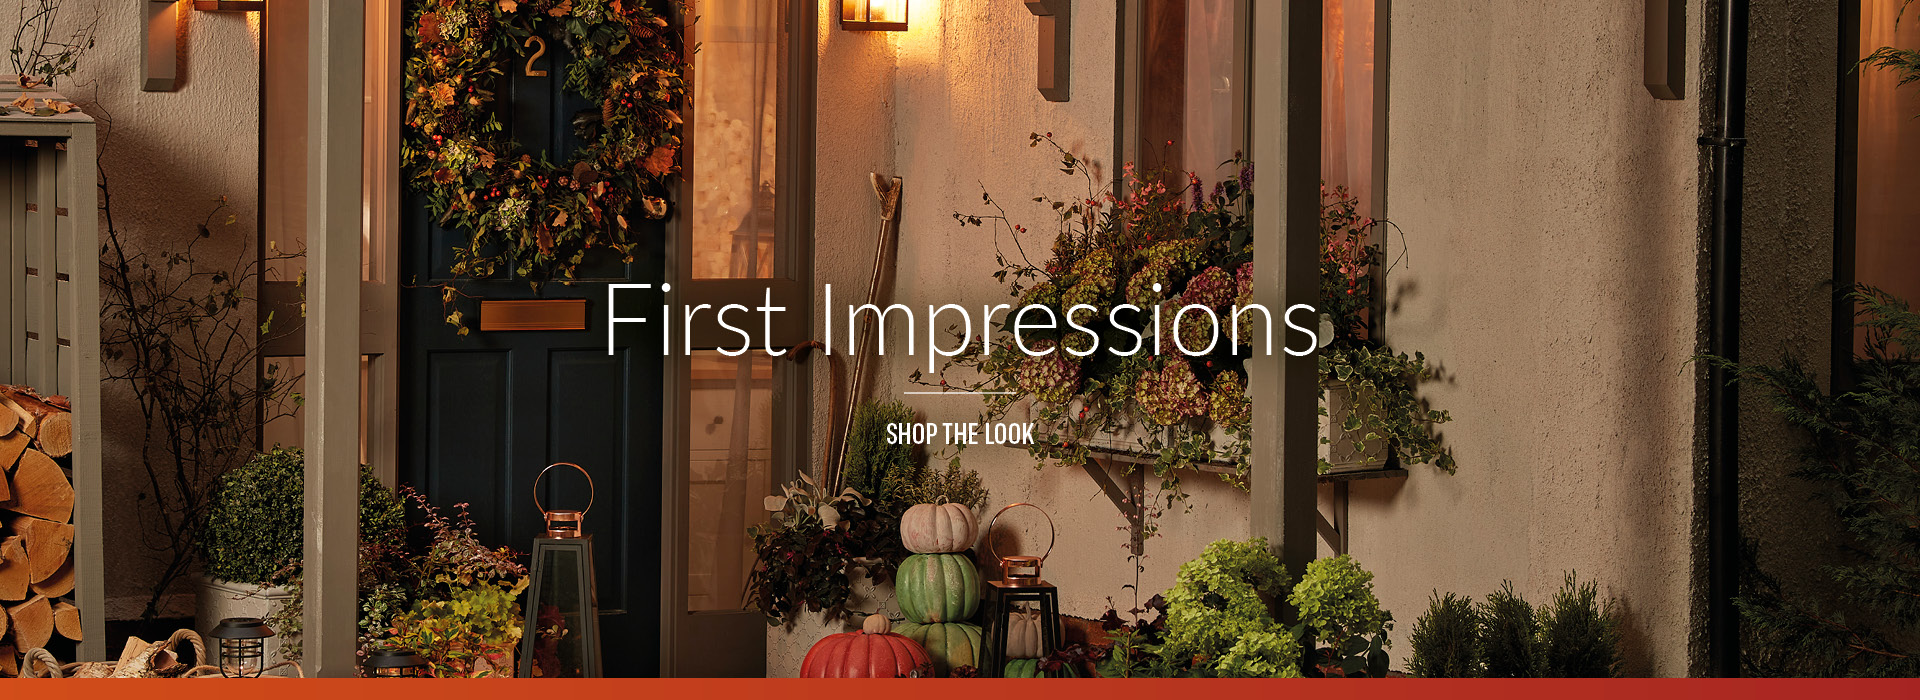 First impressions shop the look